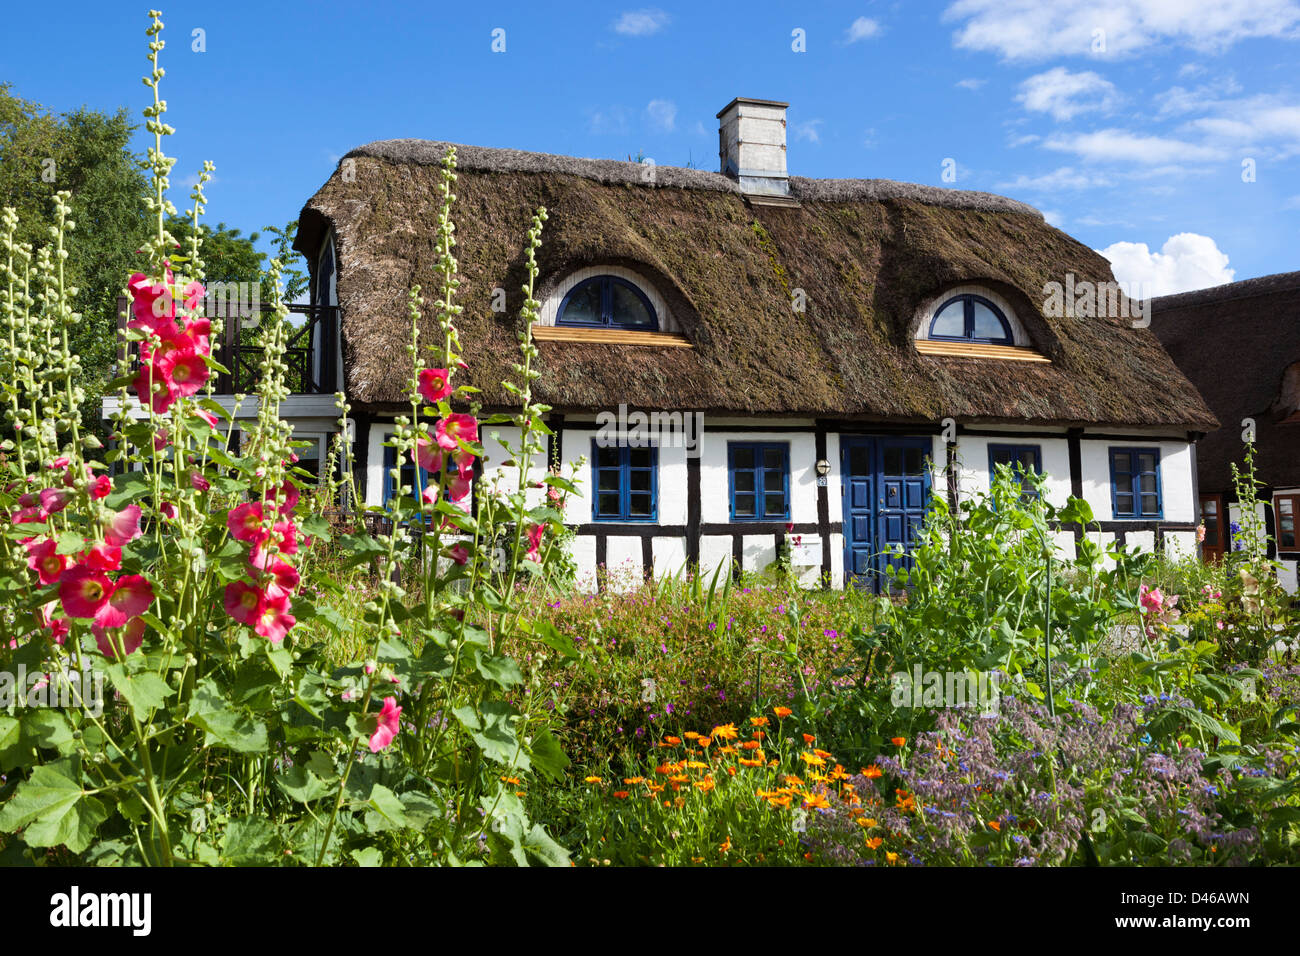 Traditional half timbered thatched cottage with Hollyhocks - Stock Image